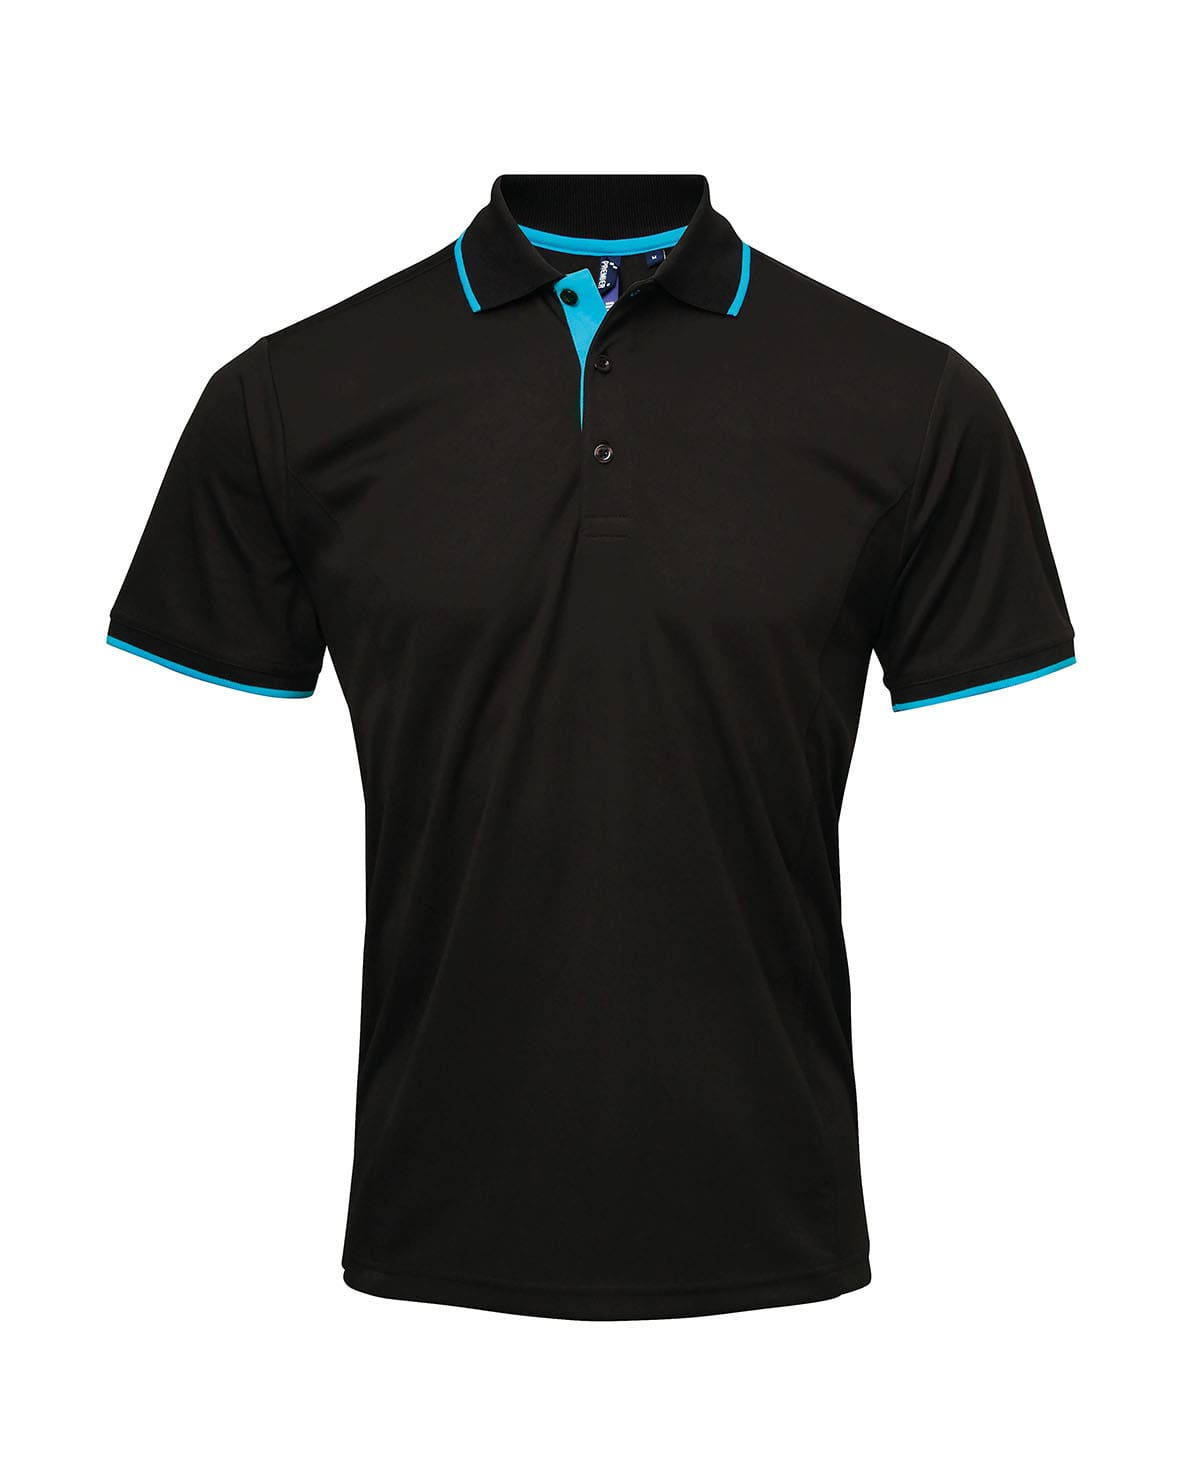 Workwear Polo Shirts Embroidered or Printed with Your Design or Logo. Smart Casual to High Visibility Polo Shirts from York Workwear